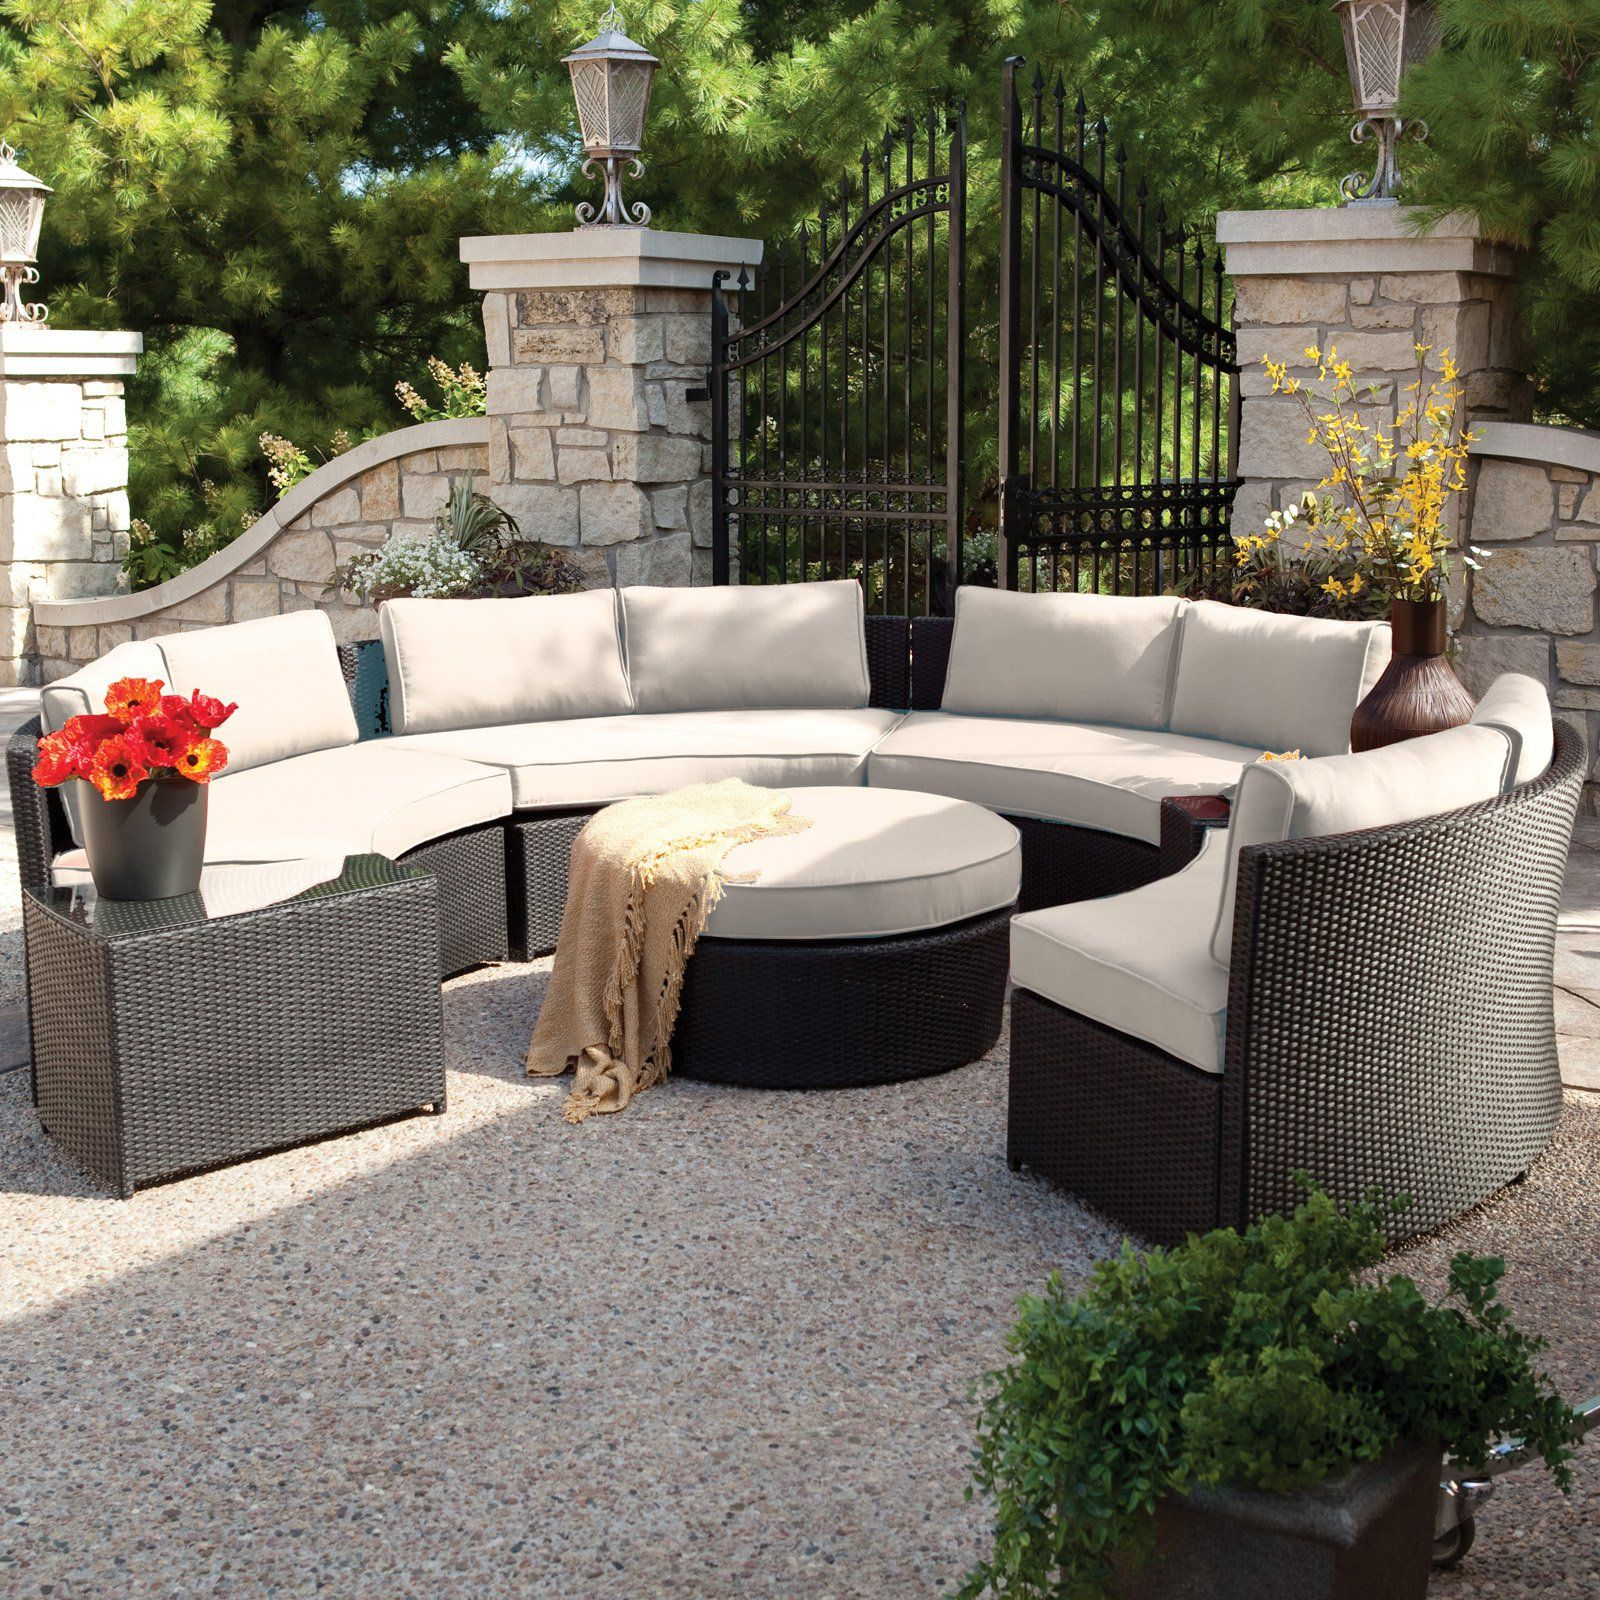 Best Deals On Patio Furniture Sets Patio Ideas Patio Furniture